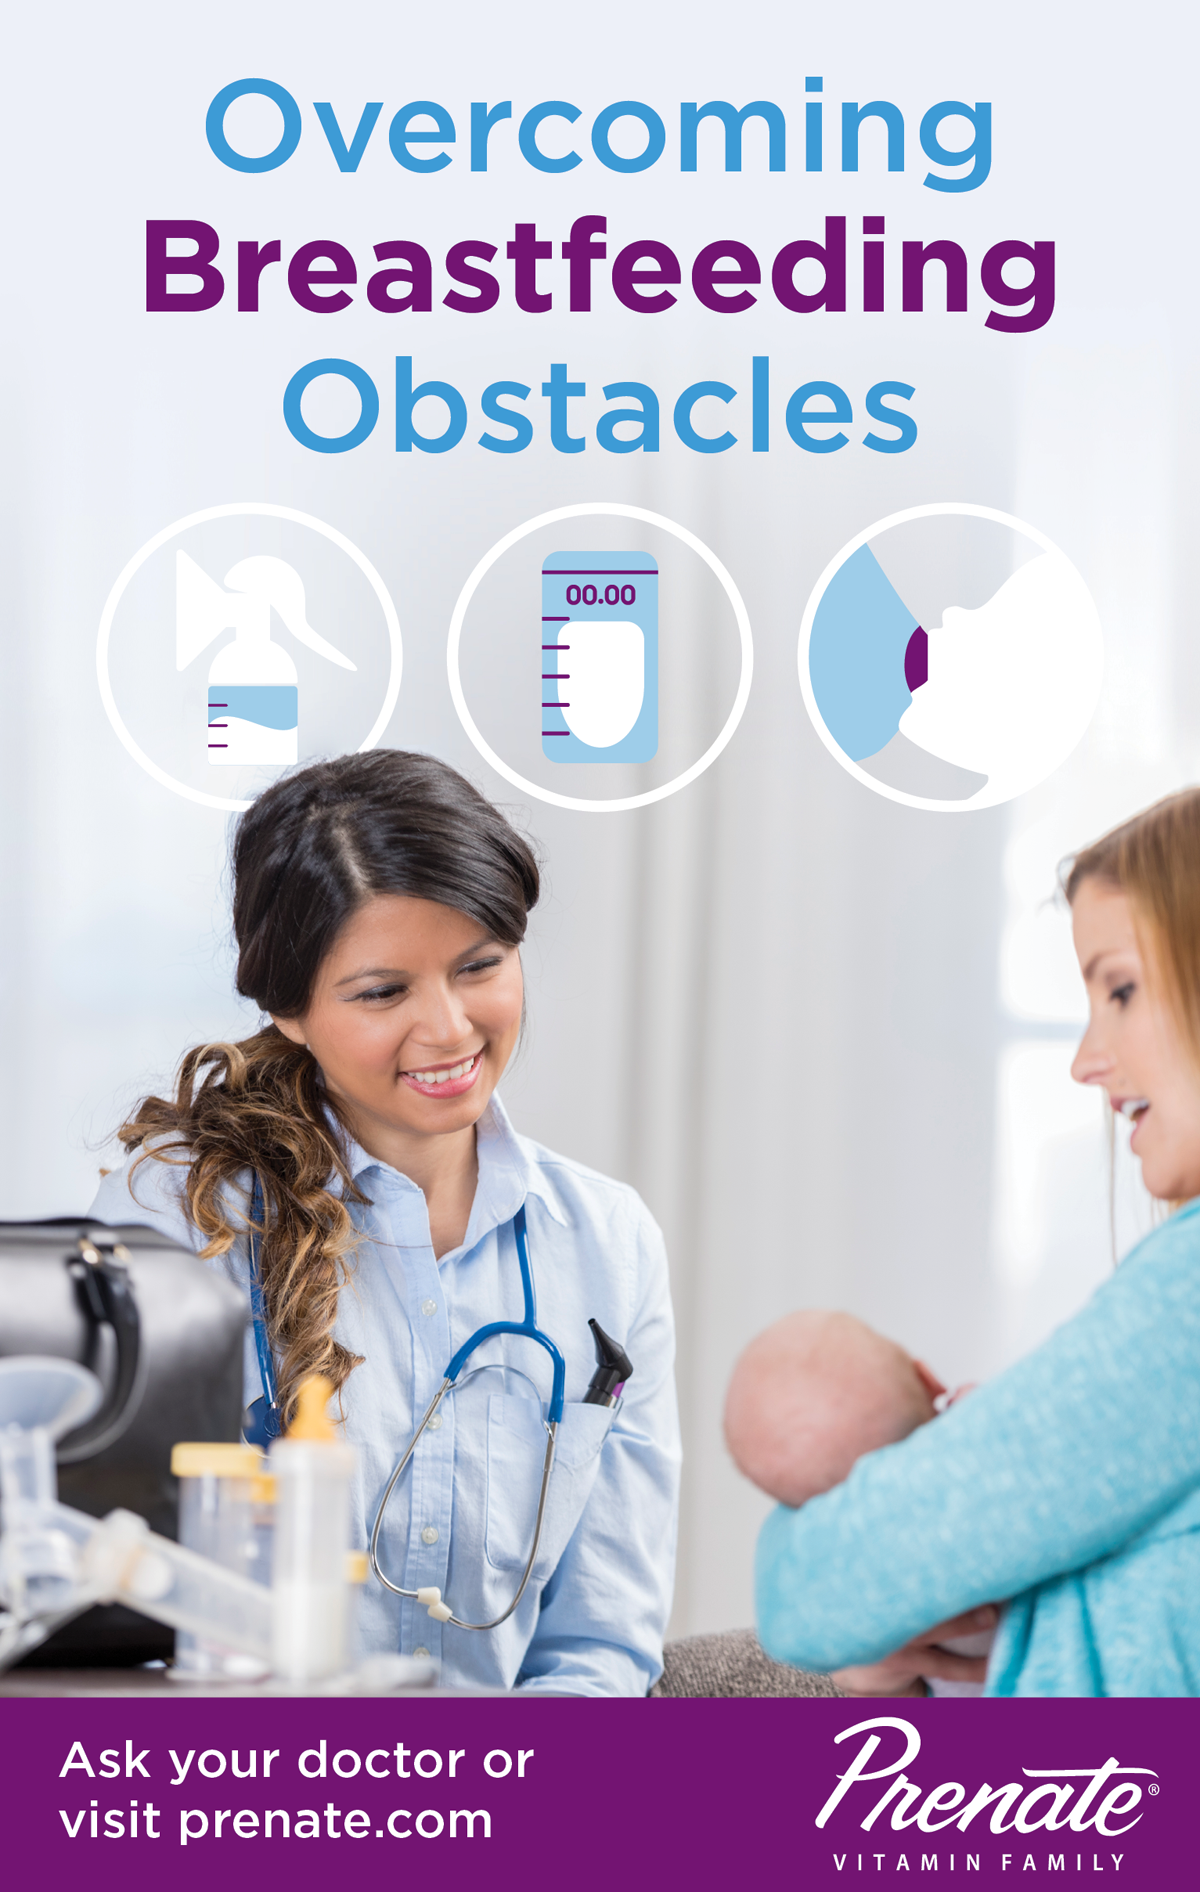 Breastfeeding: Difficulties and Their Overcoming